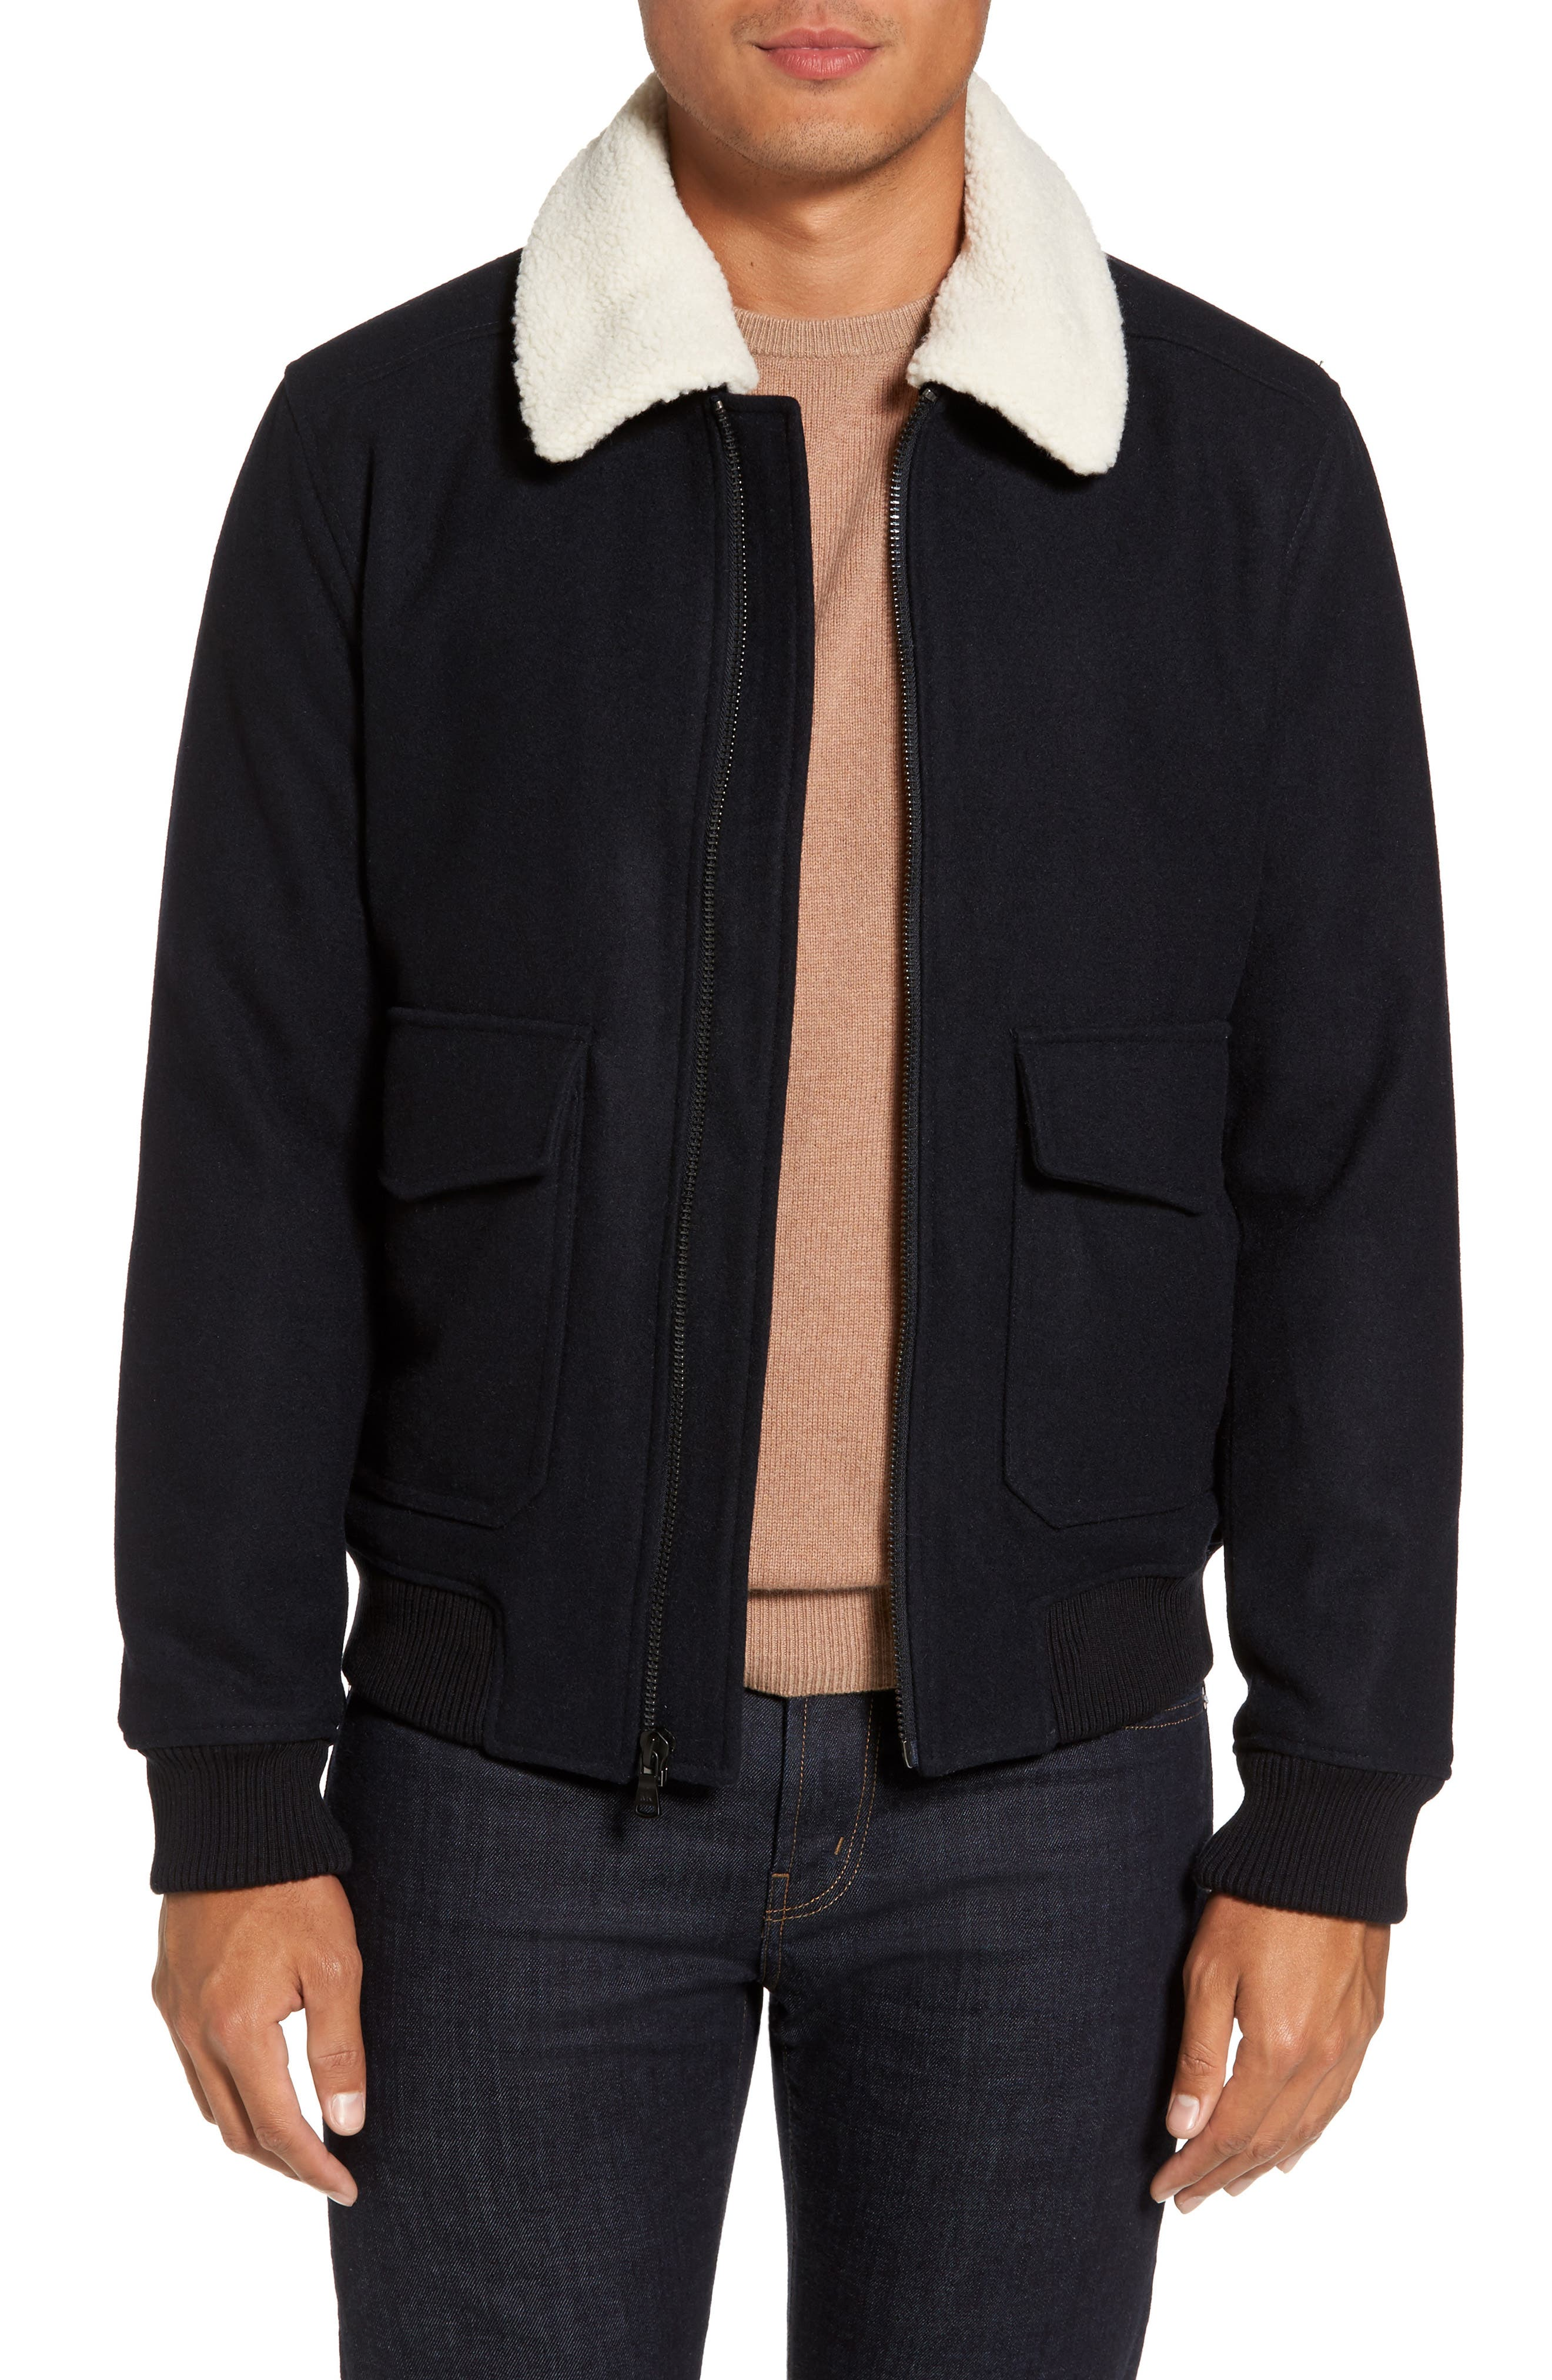 Michael Kors Fleece Collar Wool Blend A-2 Jacket